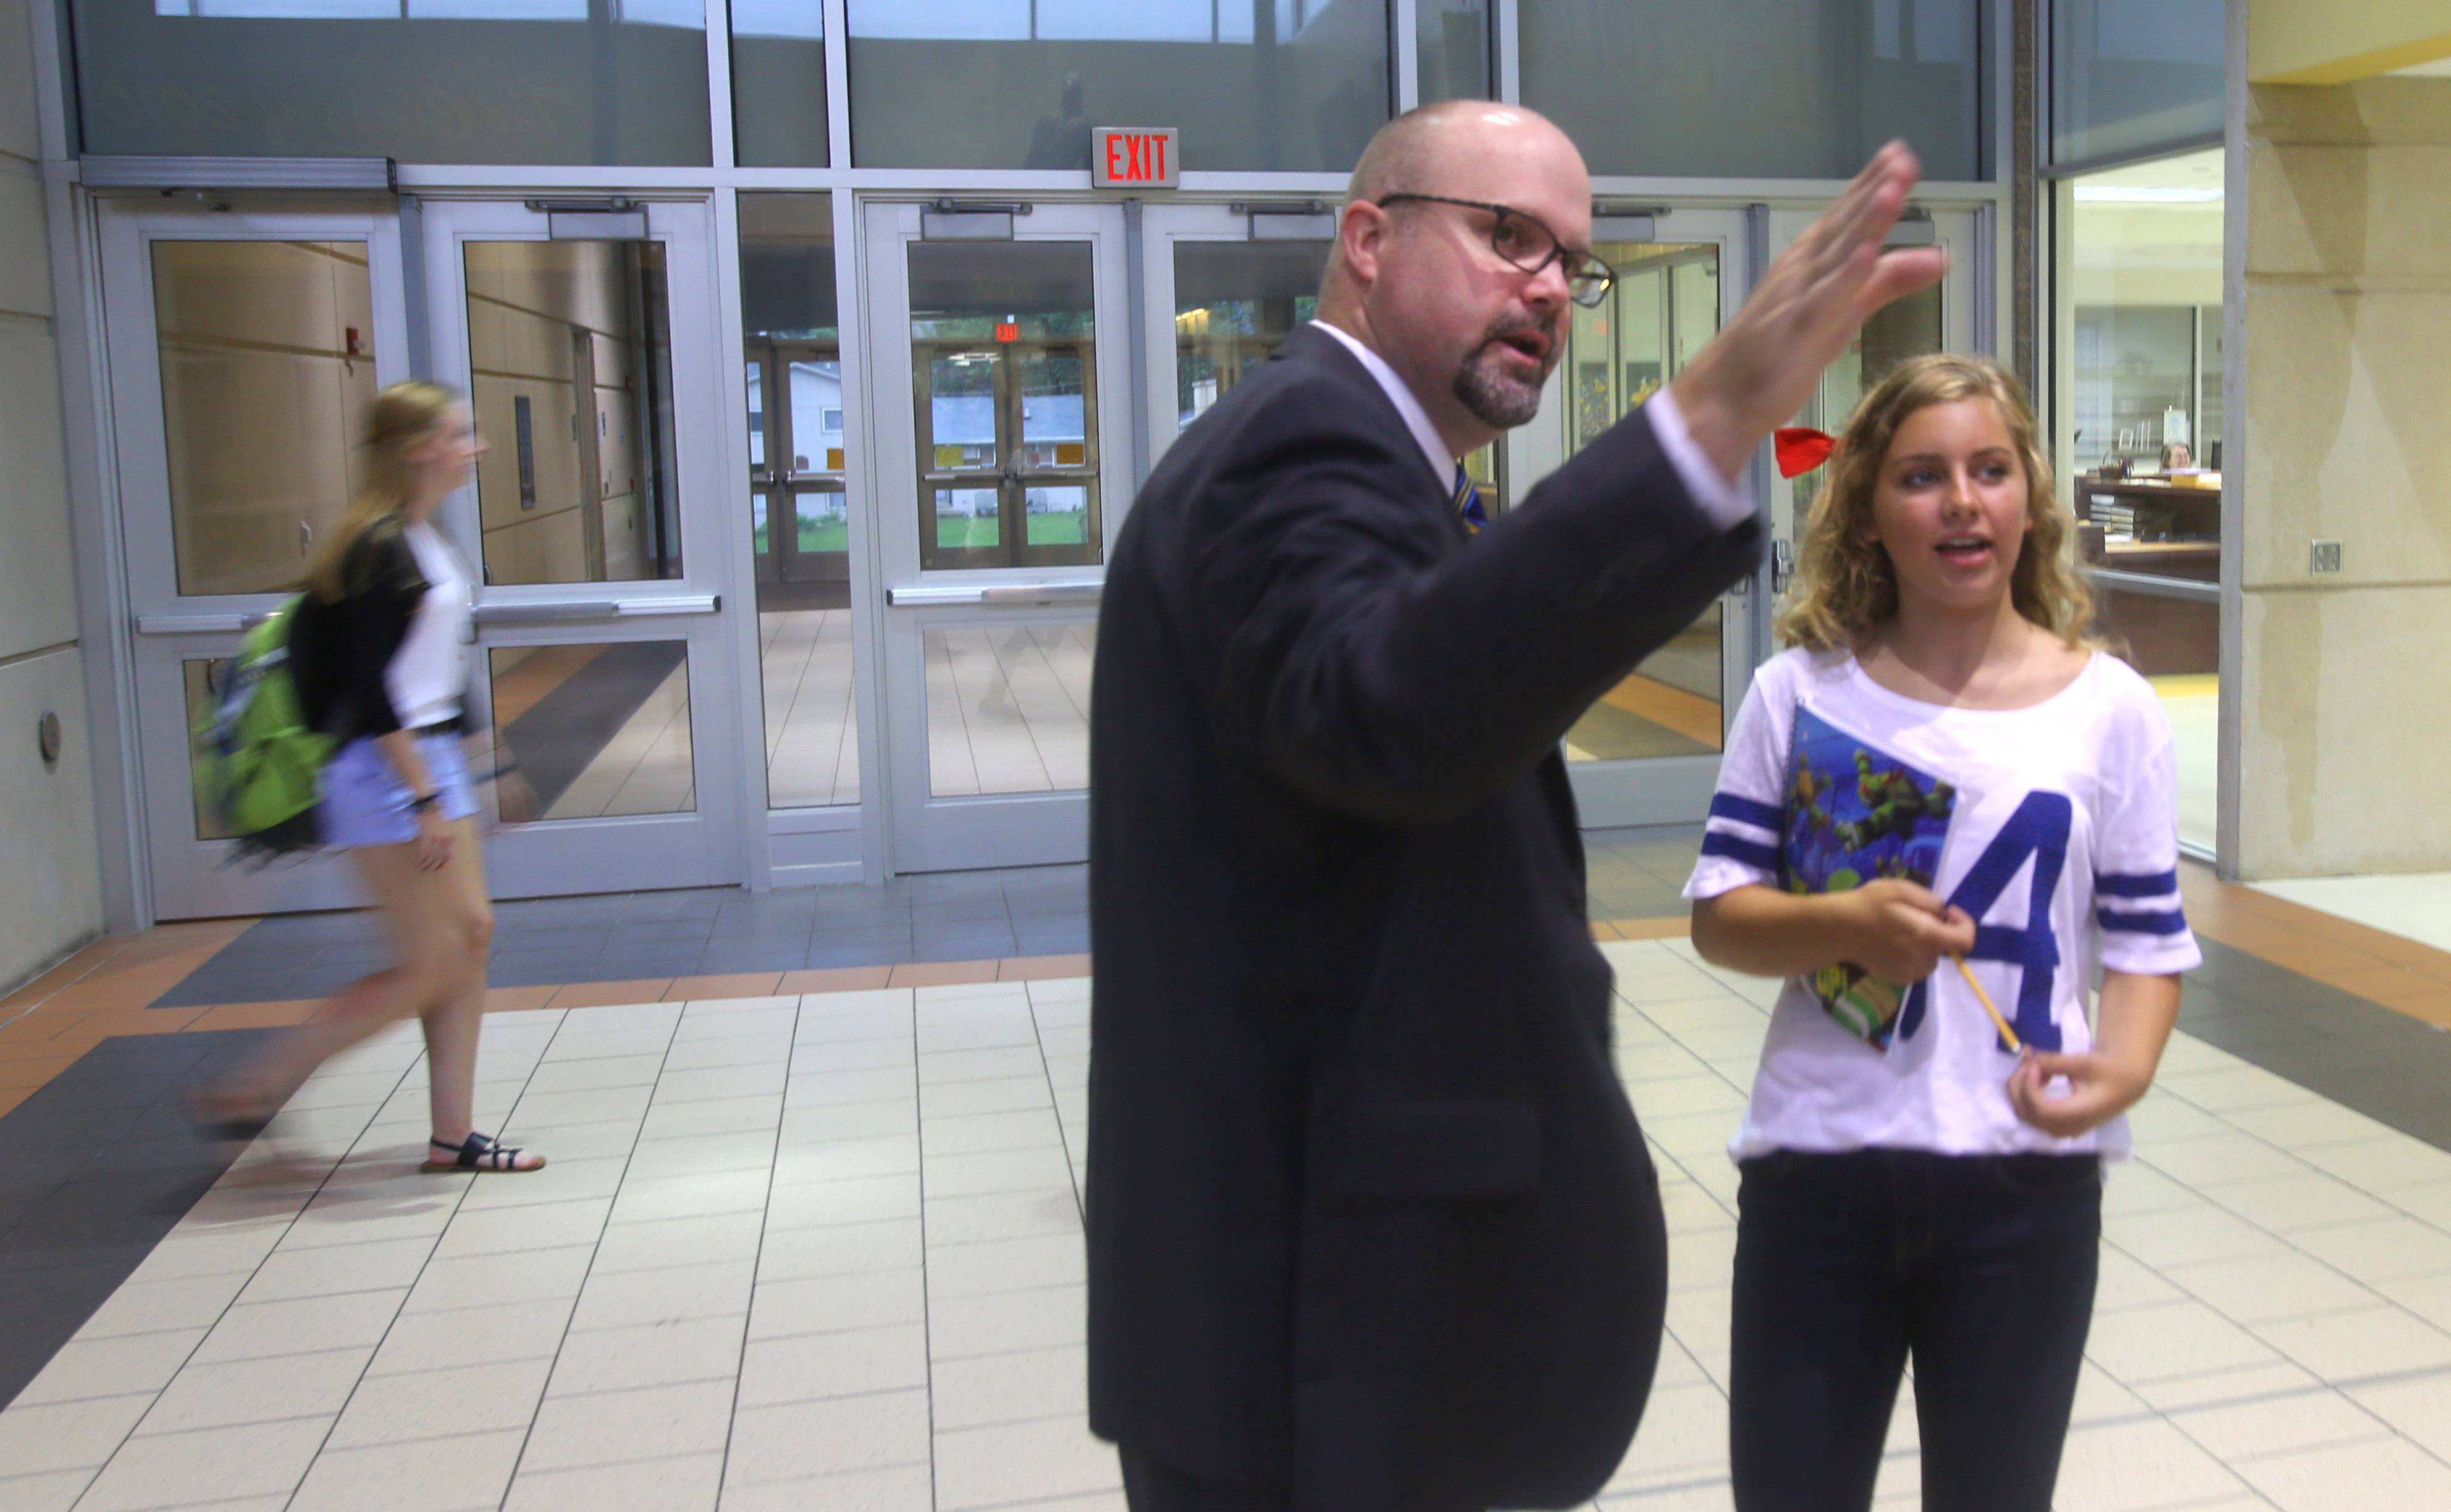 Wheaton North High School Principal Matt Biscan gets freshman Cara Parker headed in the right direction during the first day of classes Thursday.